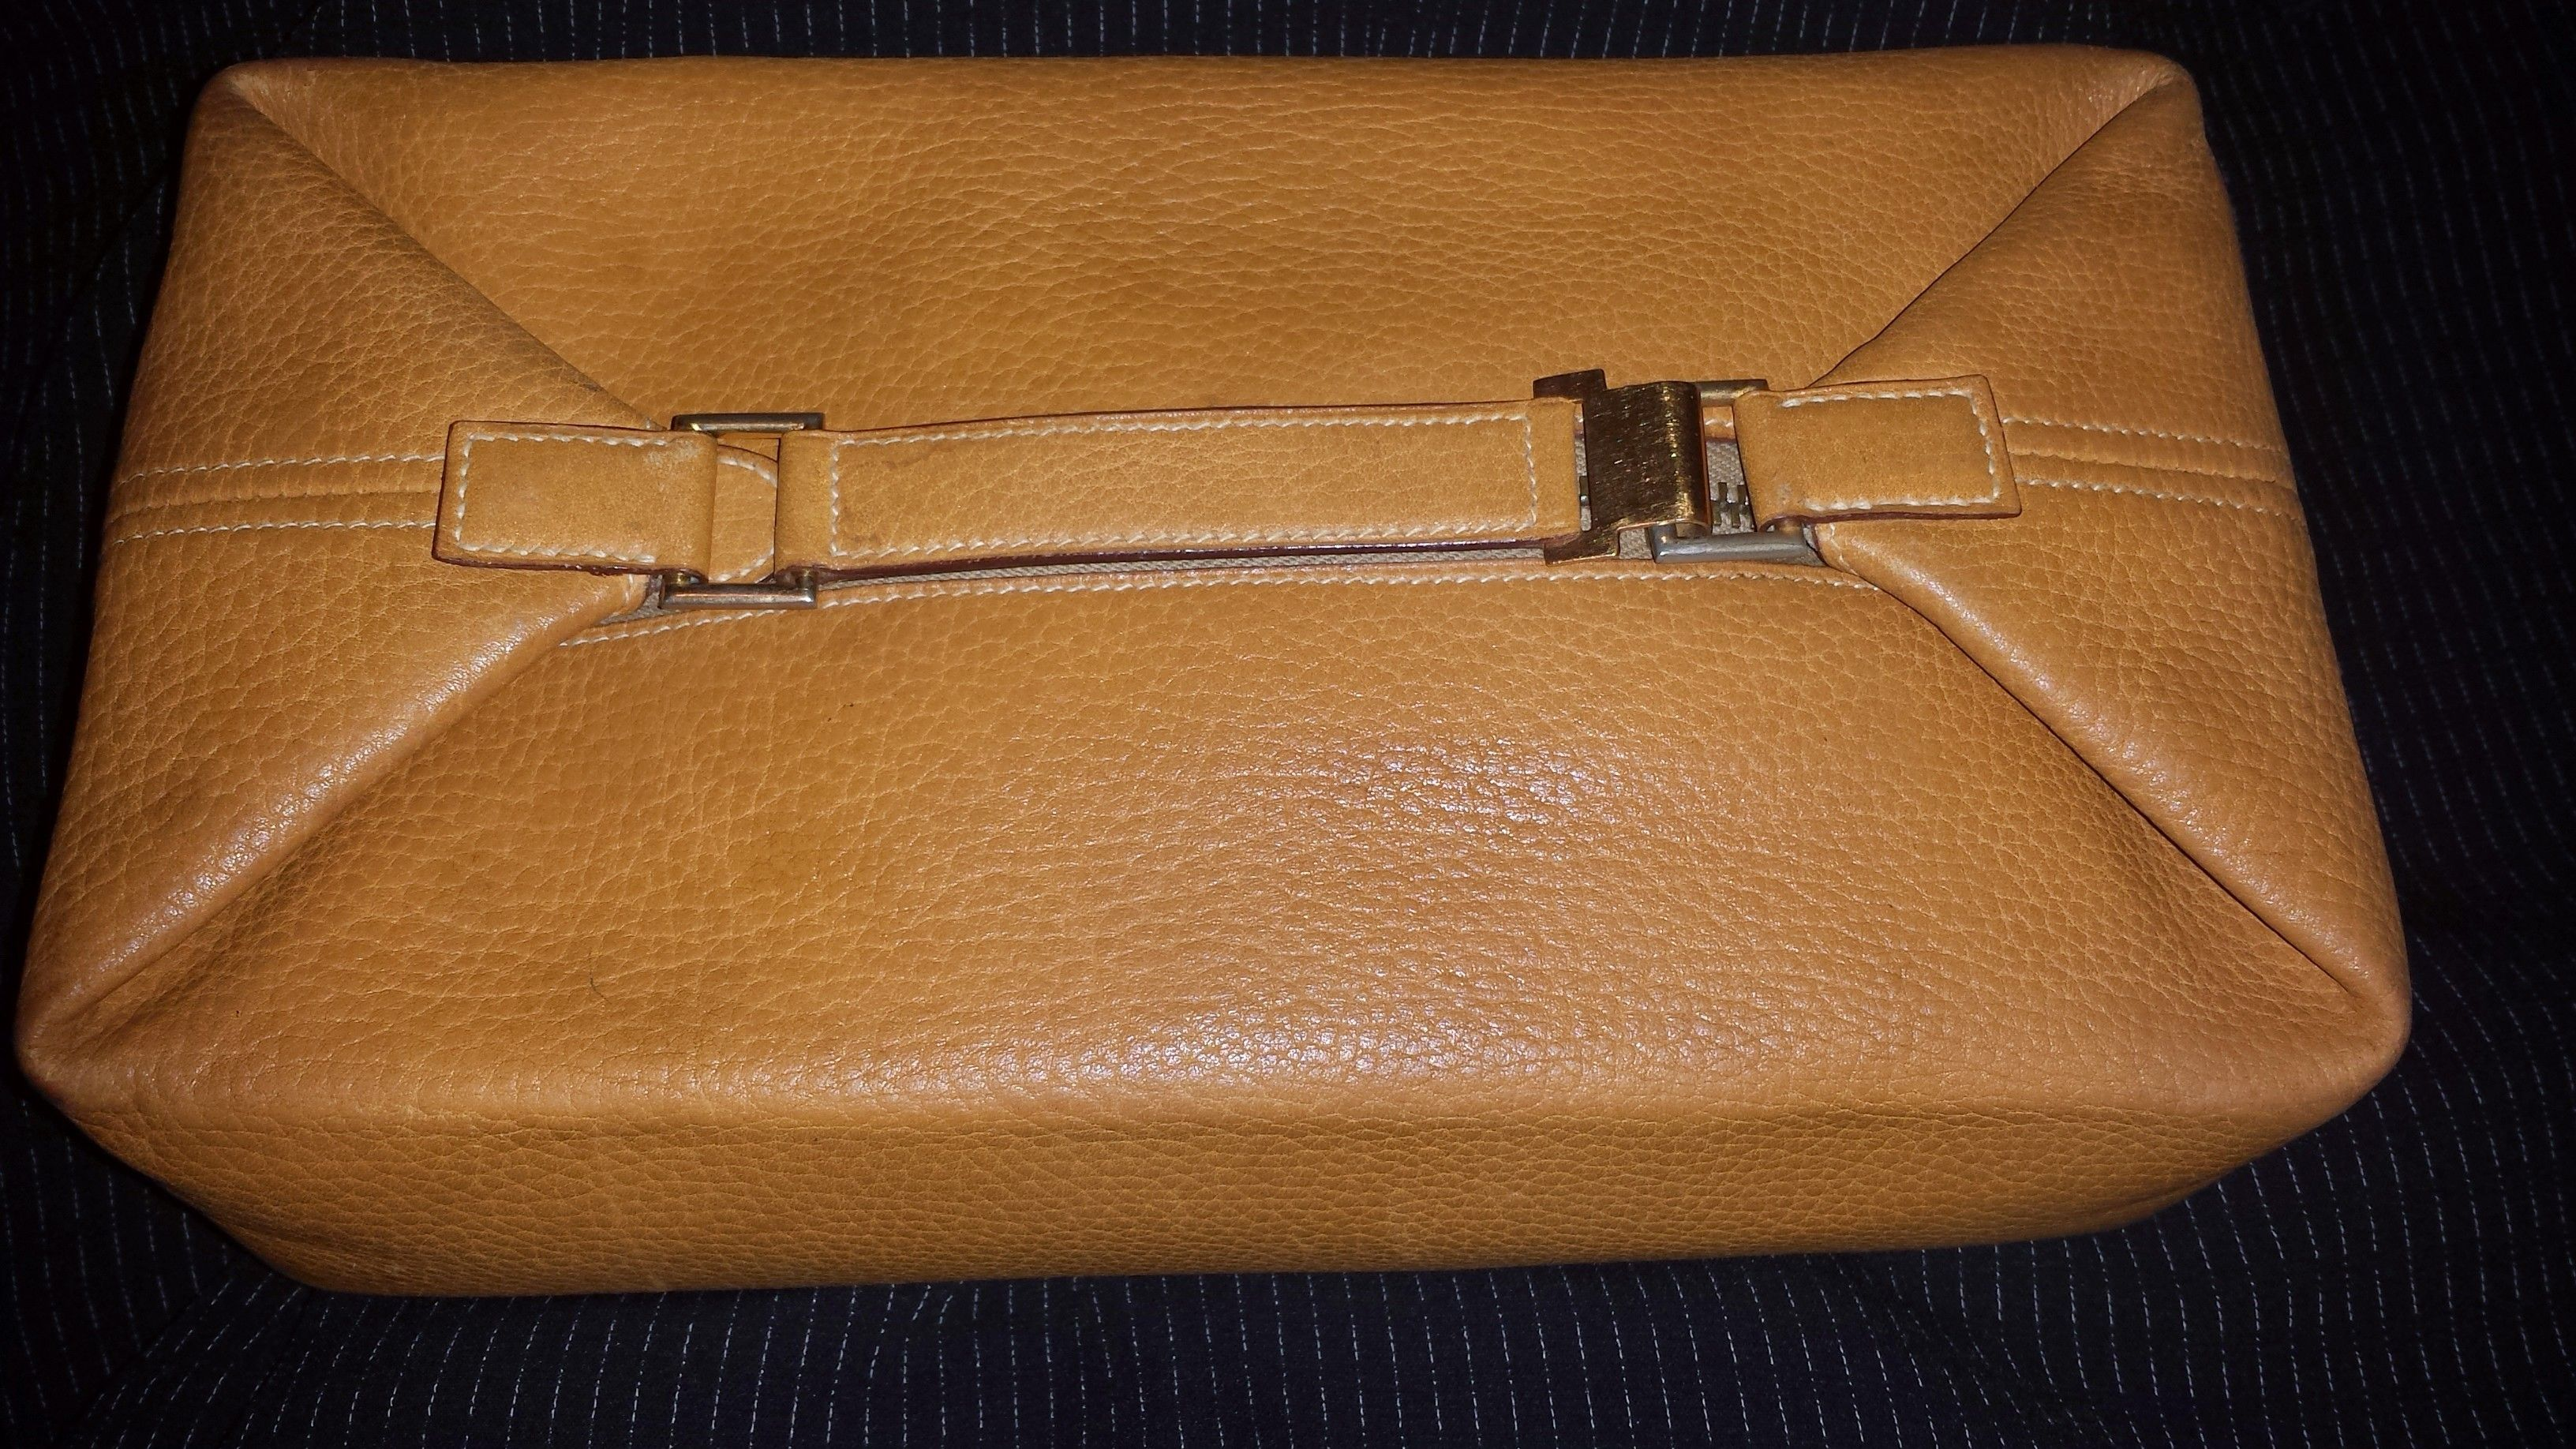 91a3e3c822 Vintage Hermes toiletry bag found for  1.50.